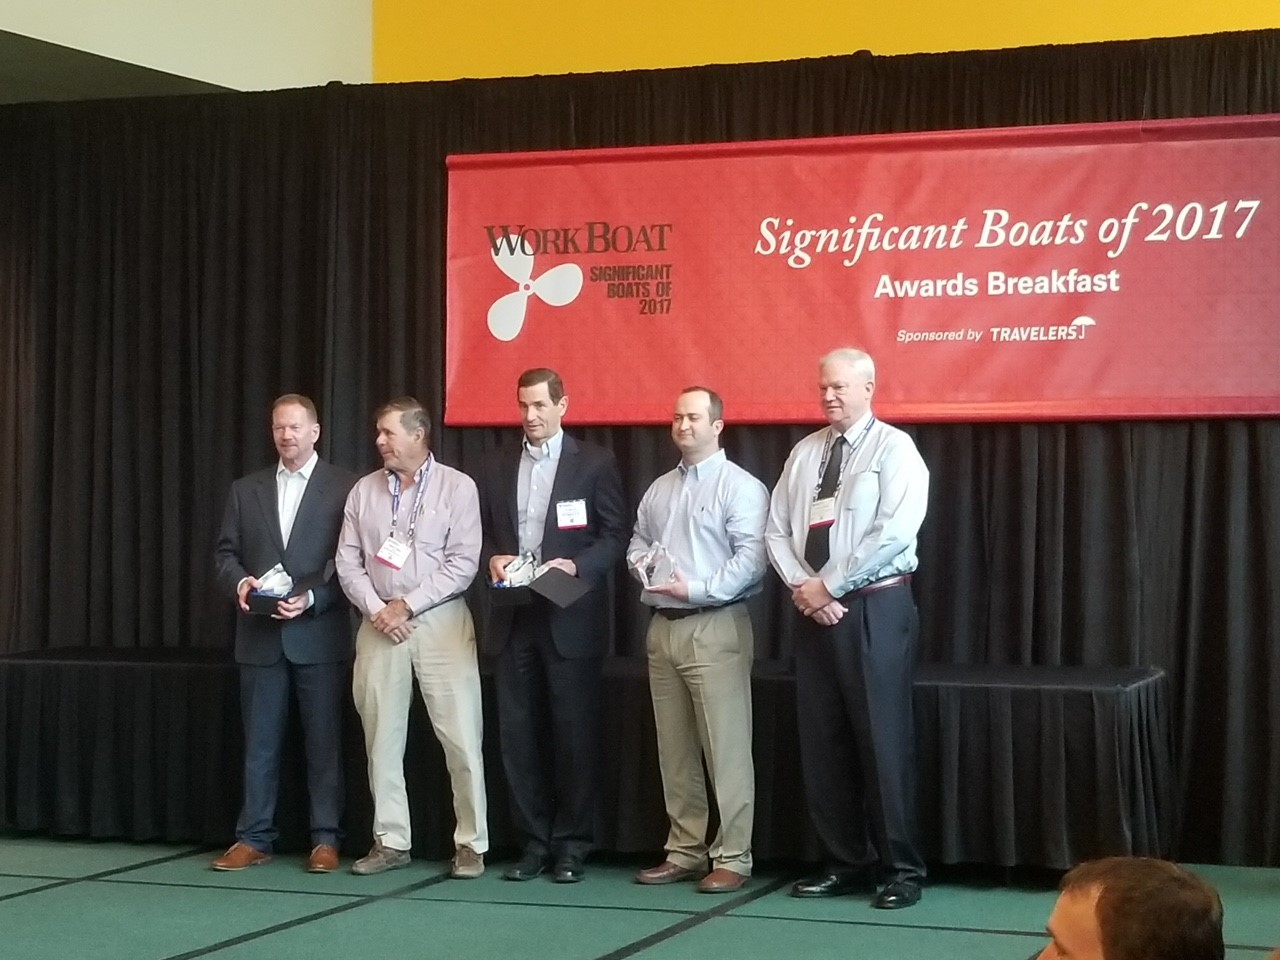 WorkBoat Show Awards Ceremony 2017, five men including Bill Lind, VP Vard Marine Houston standing in front of Significant Boats of 2017 Awards Breakfast red banner